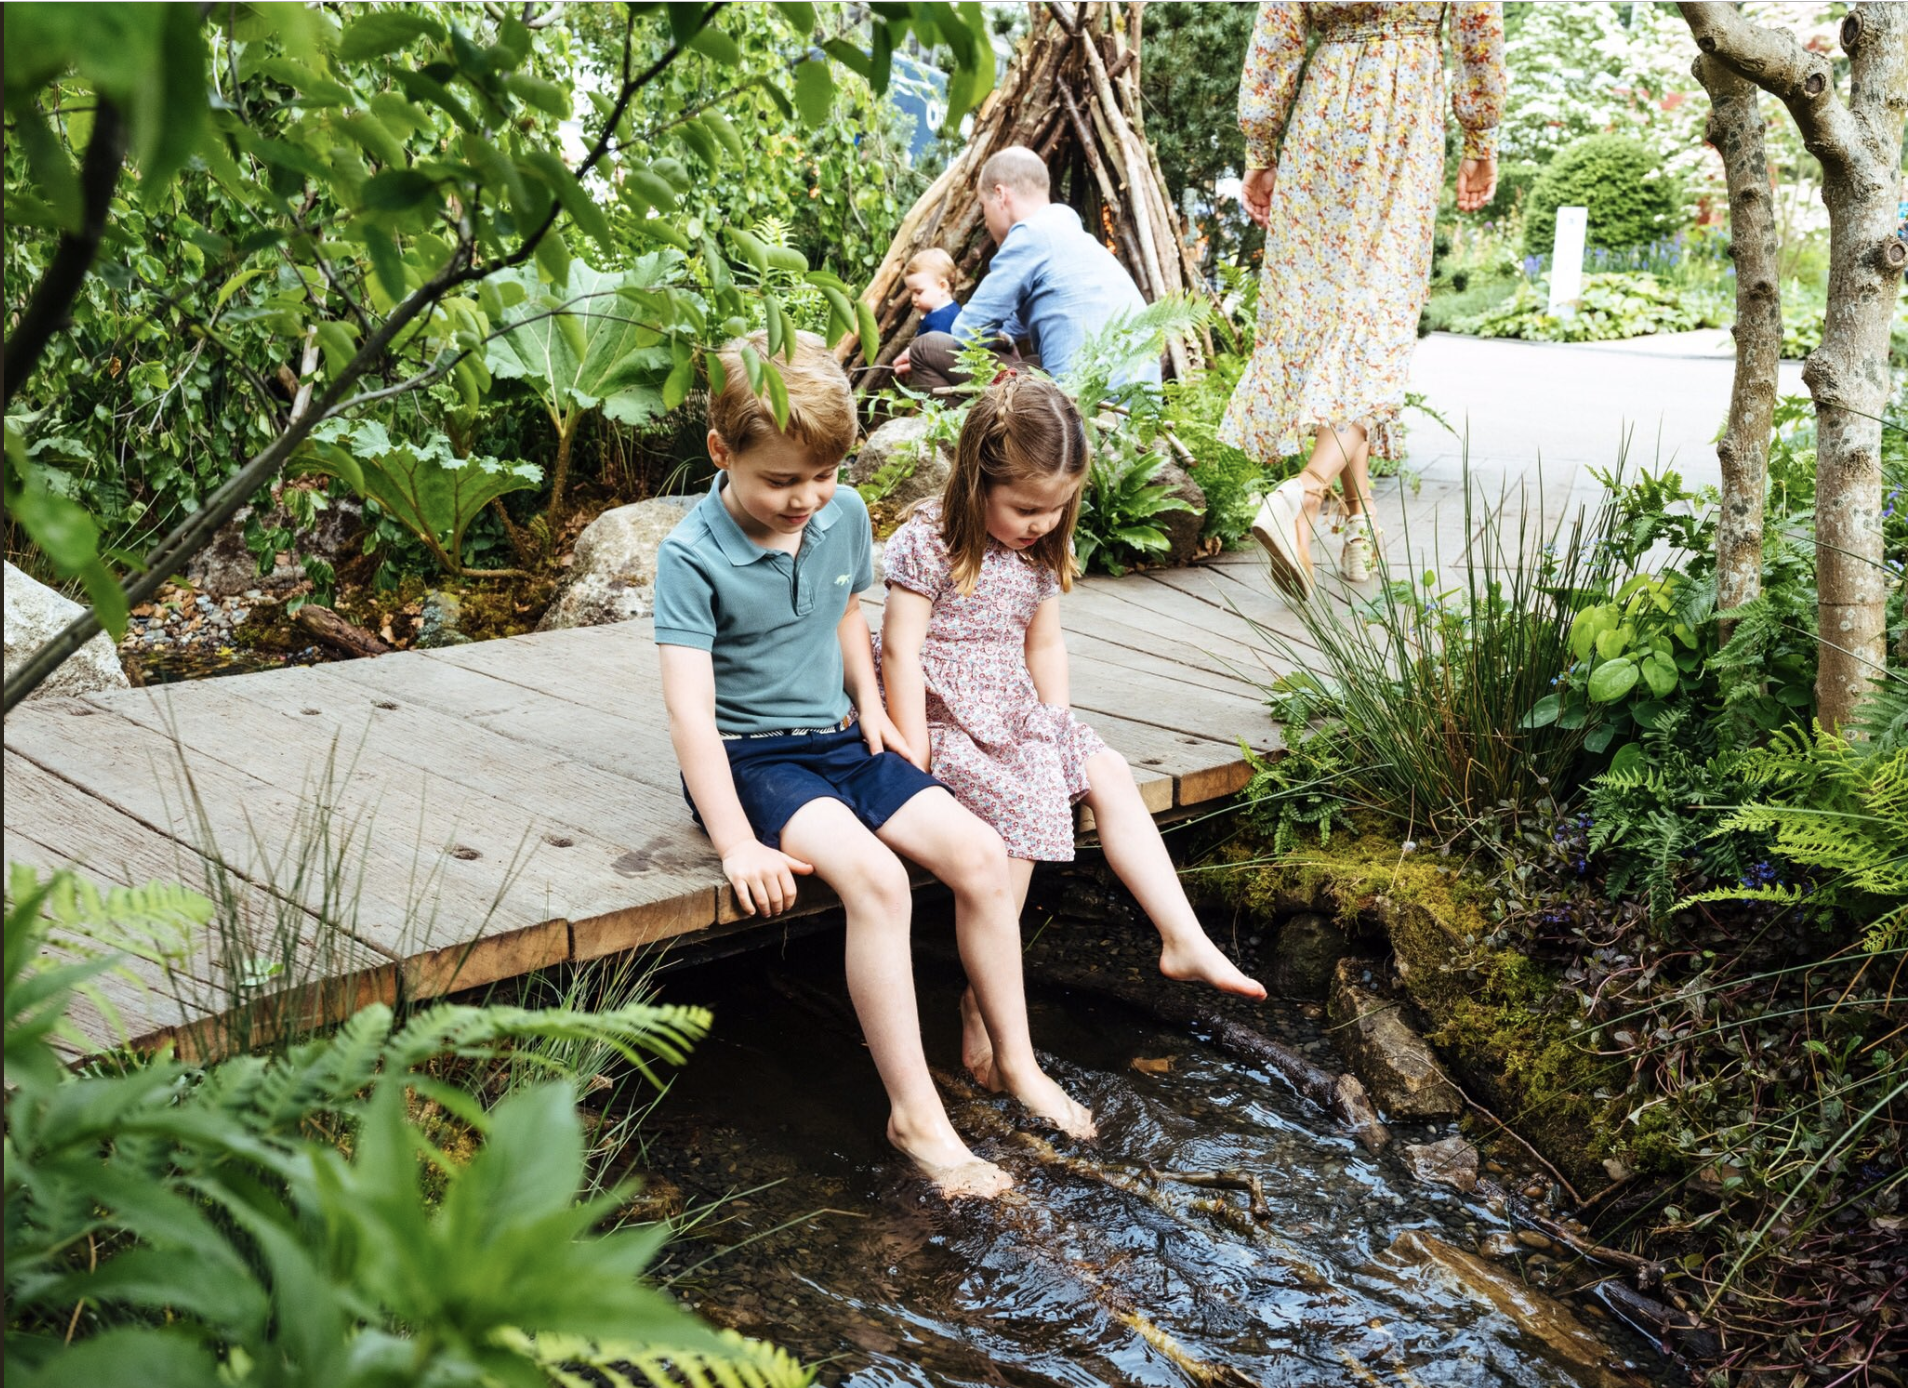 Prince George and Princess Charlotte take in their mother's garden design. Photo credit: Matt Porteous/Kensington Palace